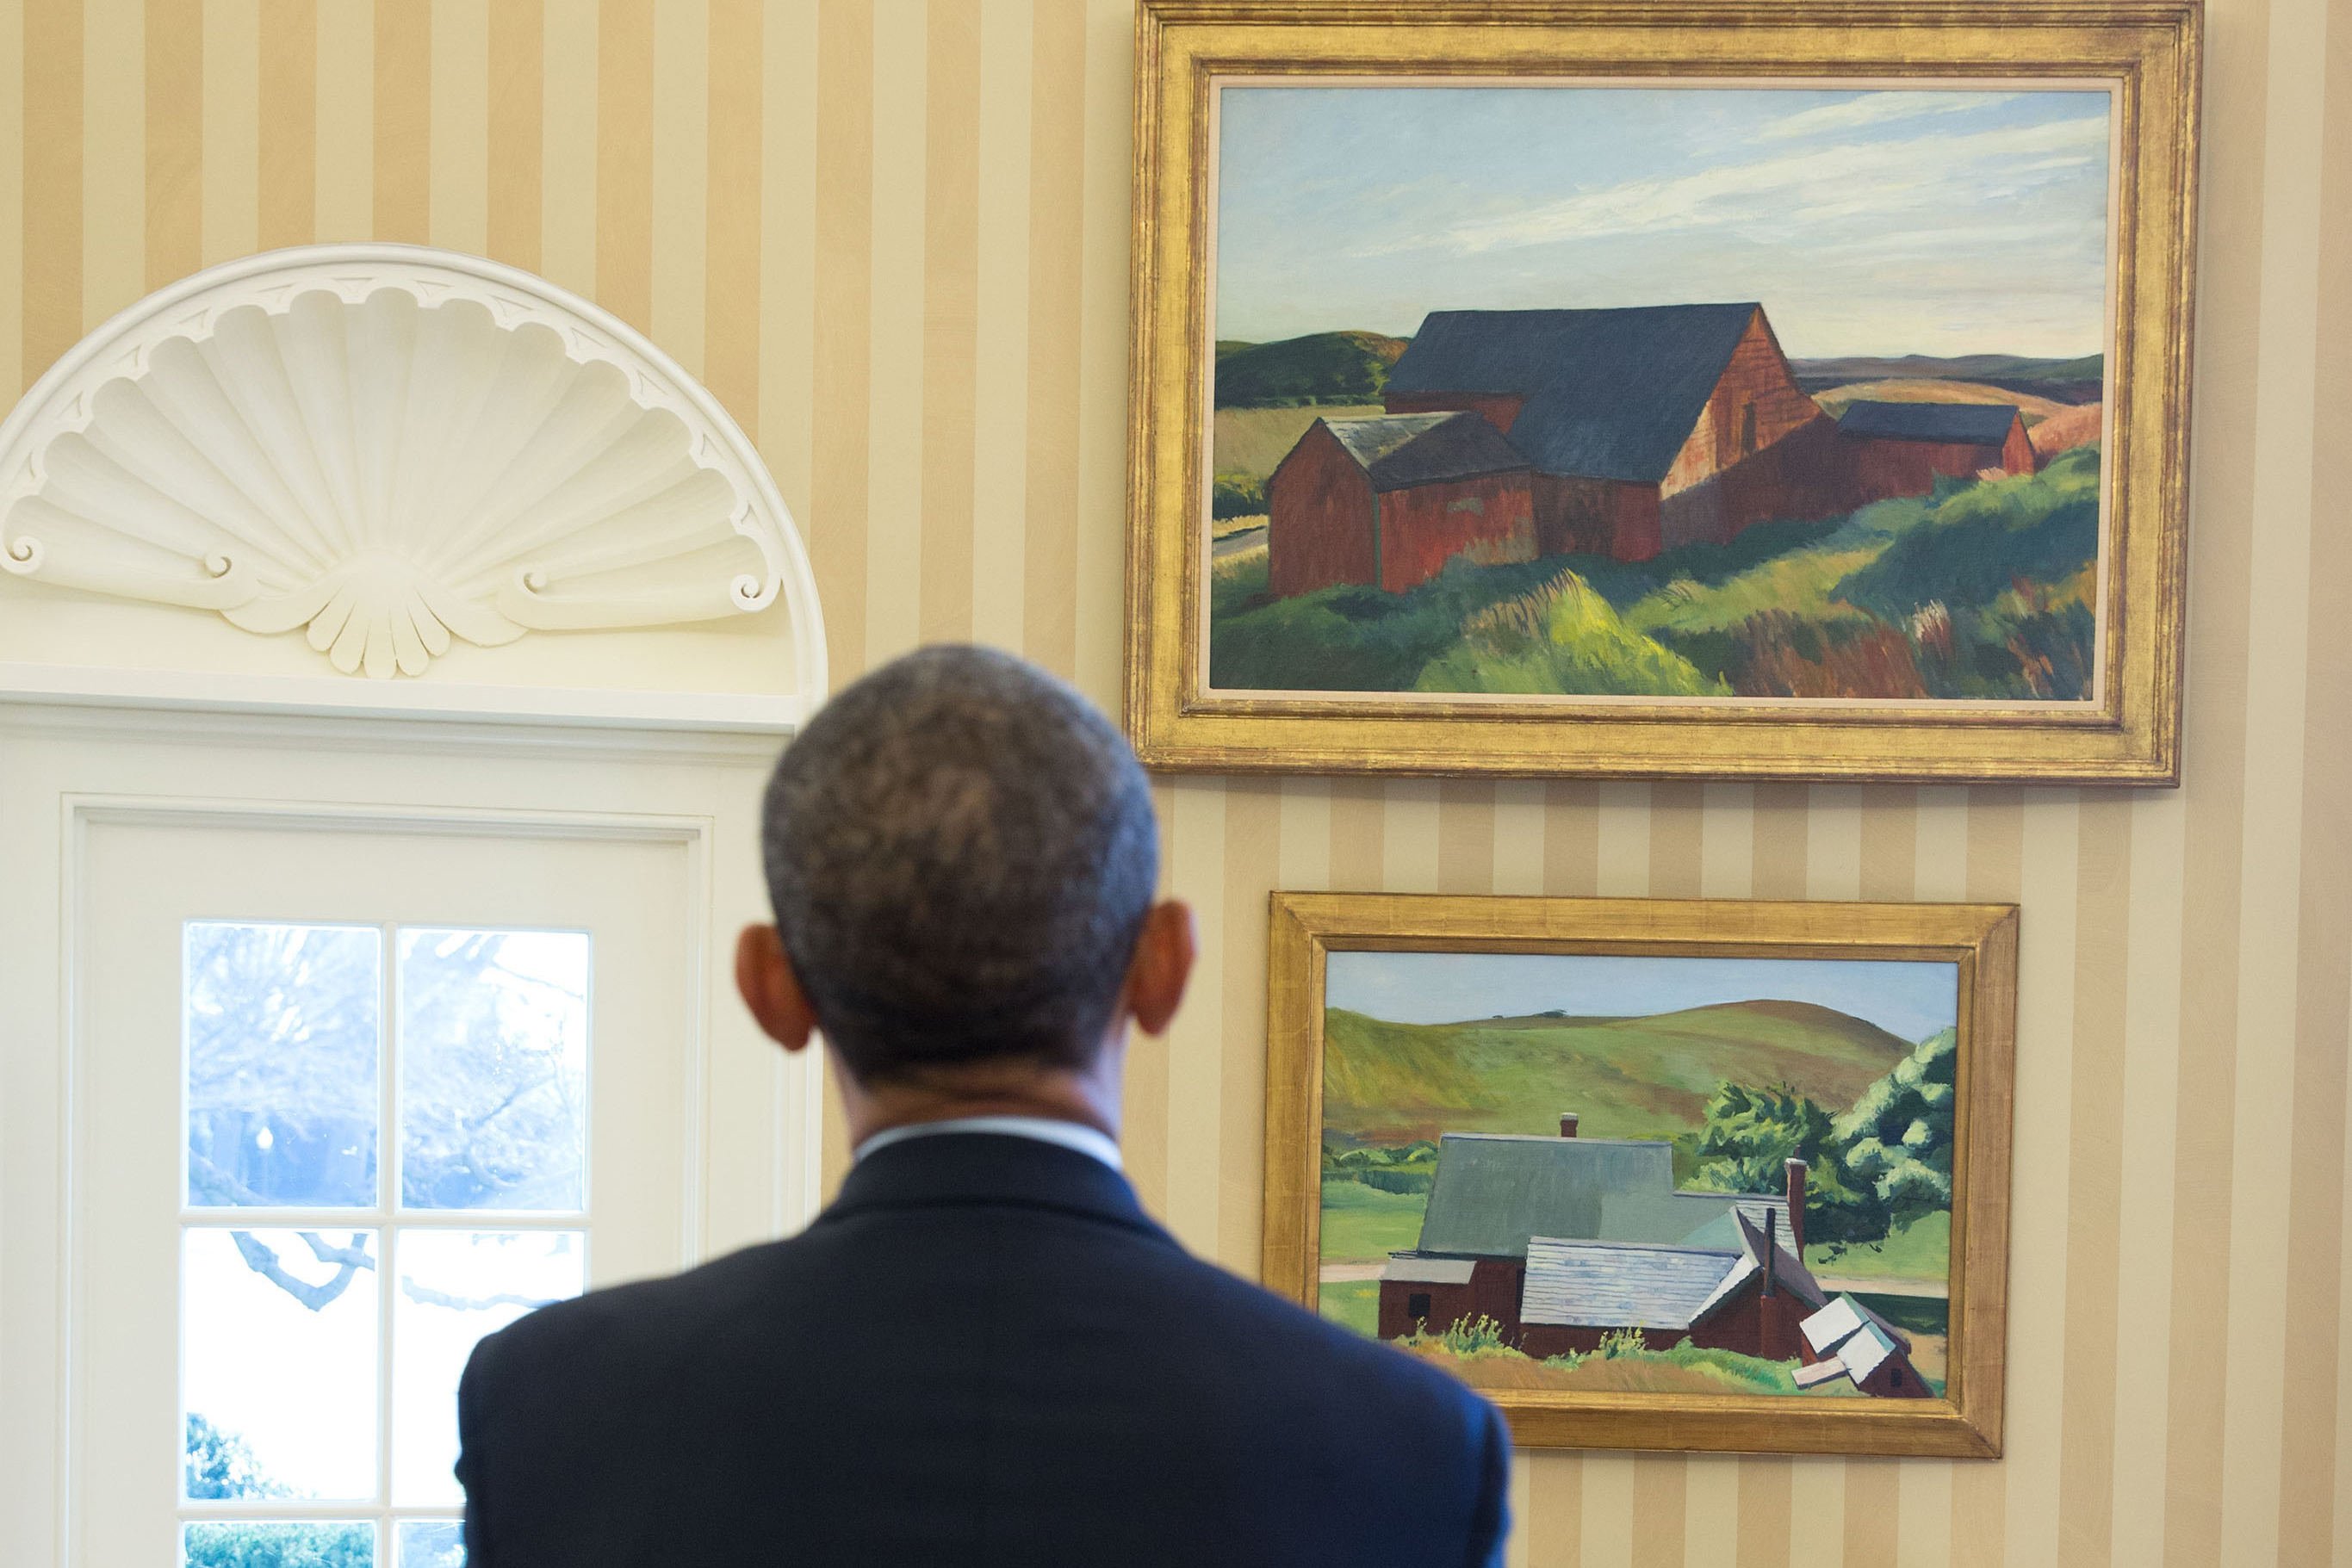 oval office paintings. Whitney Lends Two Paintings To White House, New York Post Oval Office S